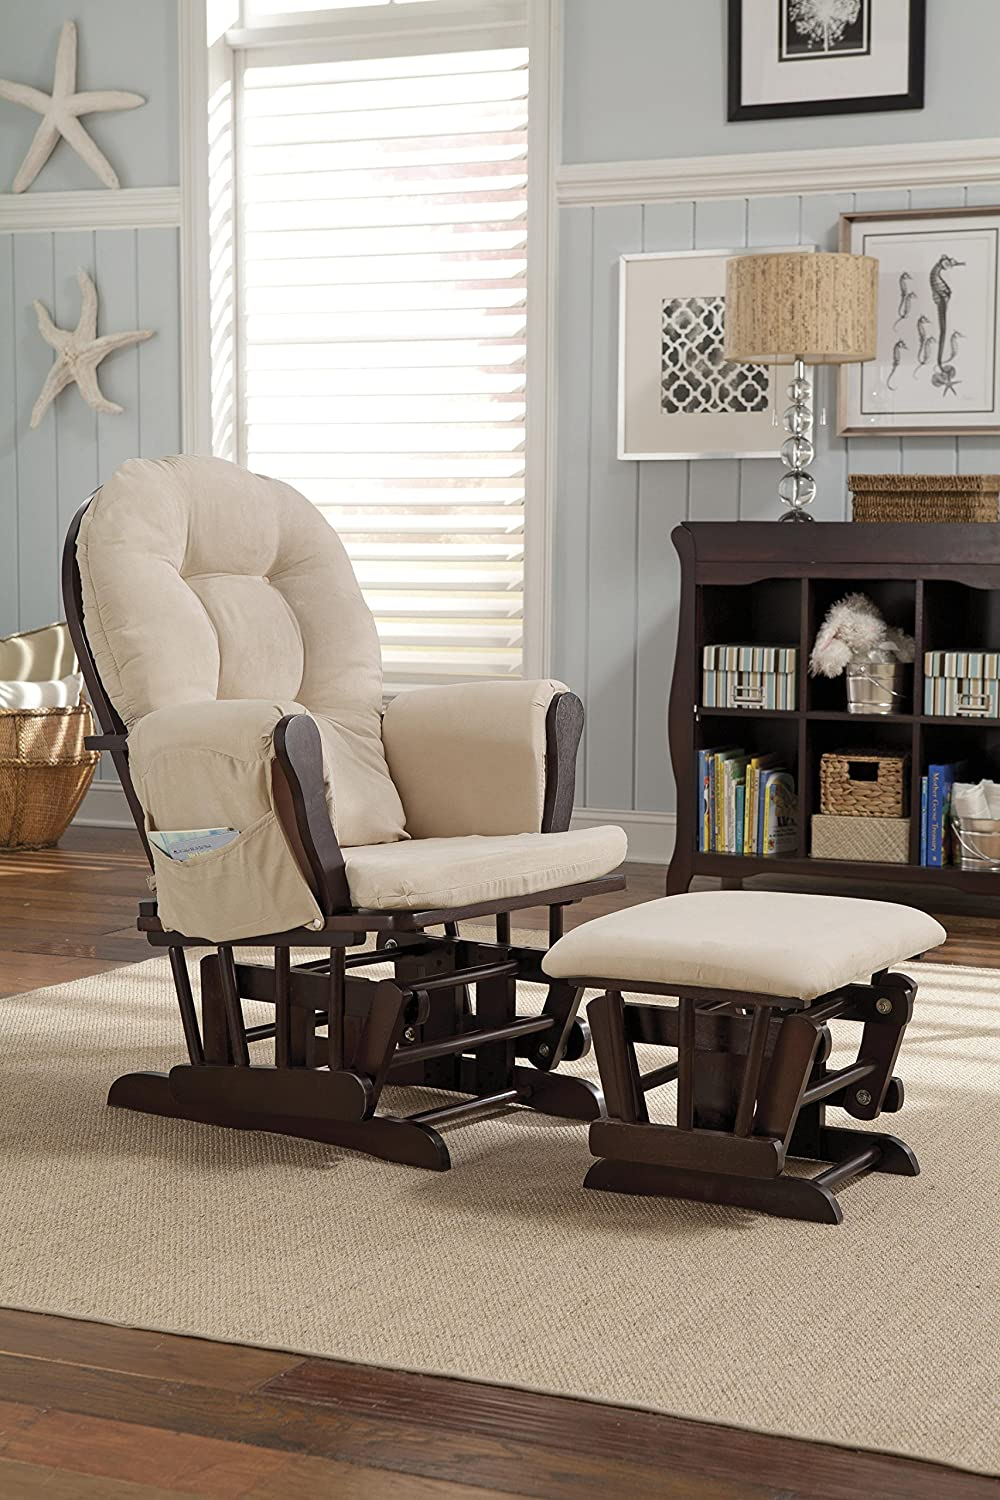 Amazon.com: Stork Craft Hoop Glider and Ottoman Set, Espresso/Beige: Baby - Amazon.com: Stork Craft Hoop Glider And Ottoman Set, Espresso